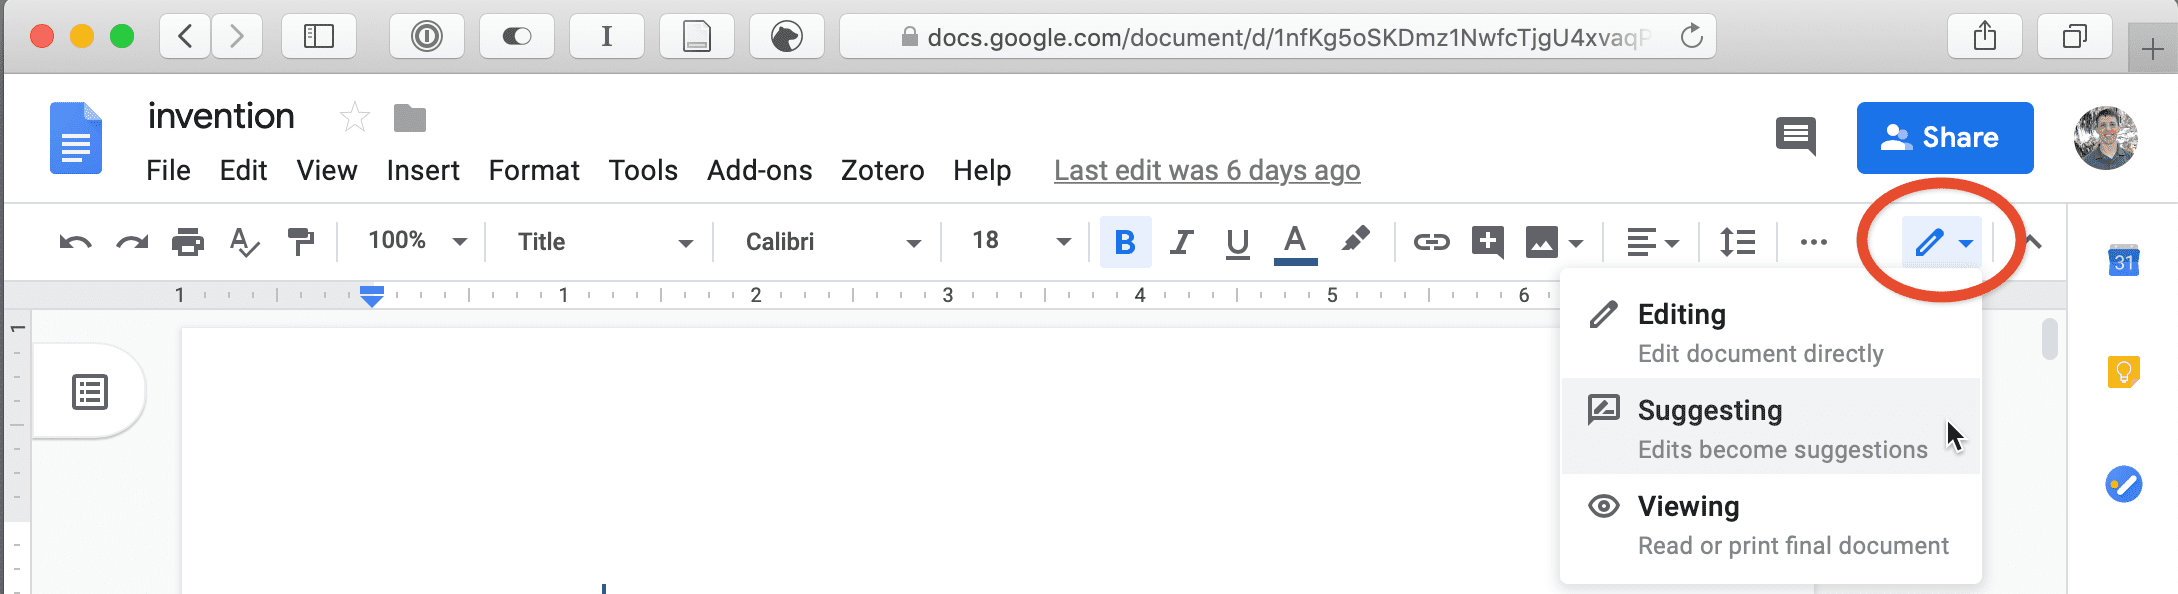 Screenshot of Google Docs' *suggesting* mode toolbar option.